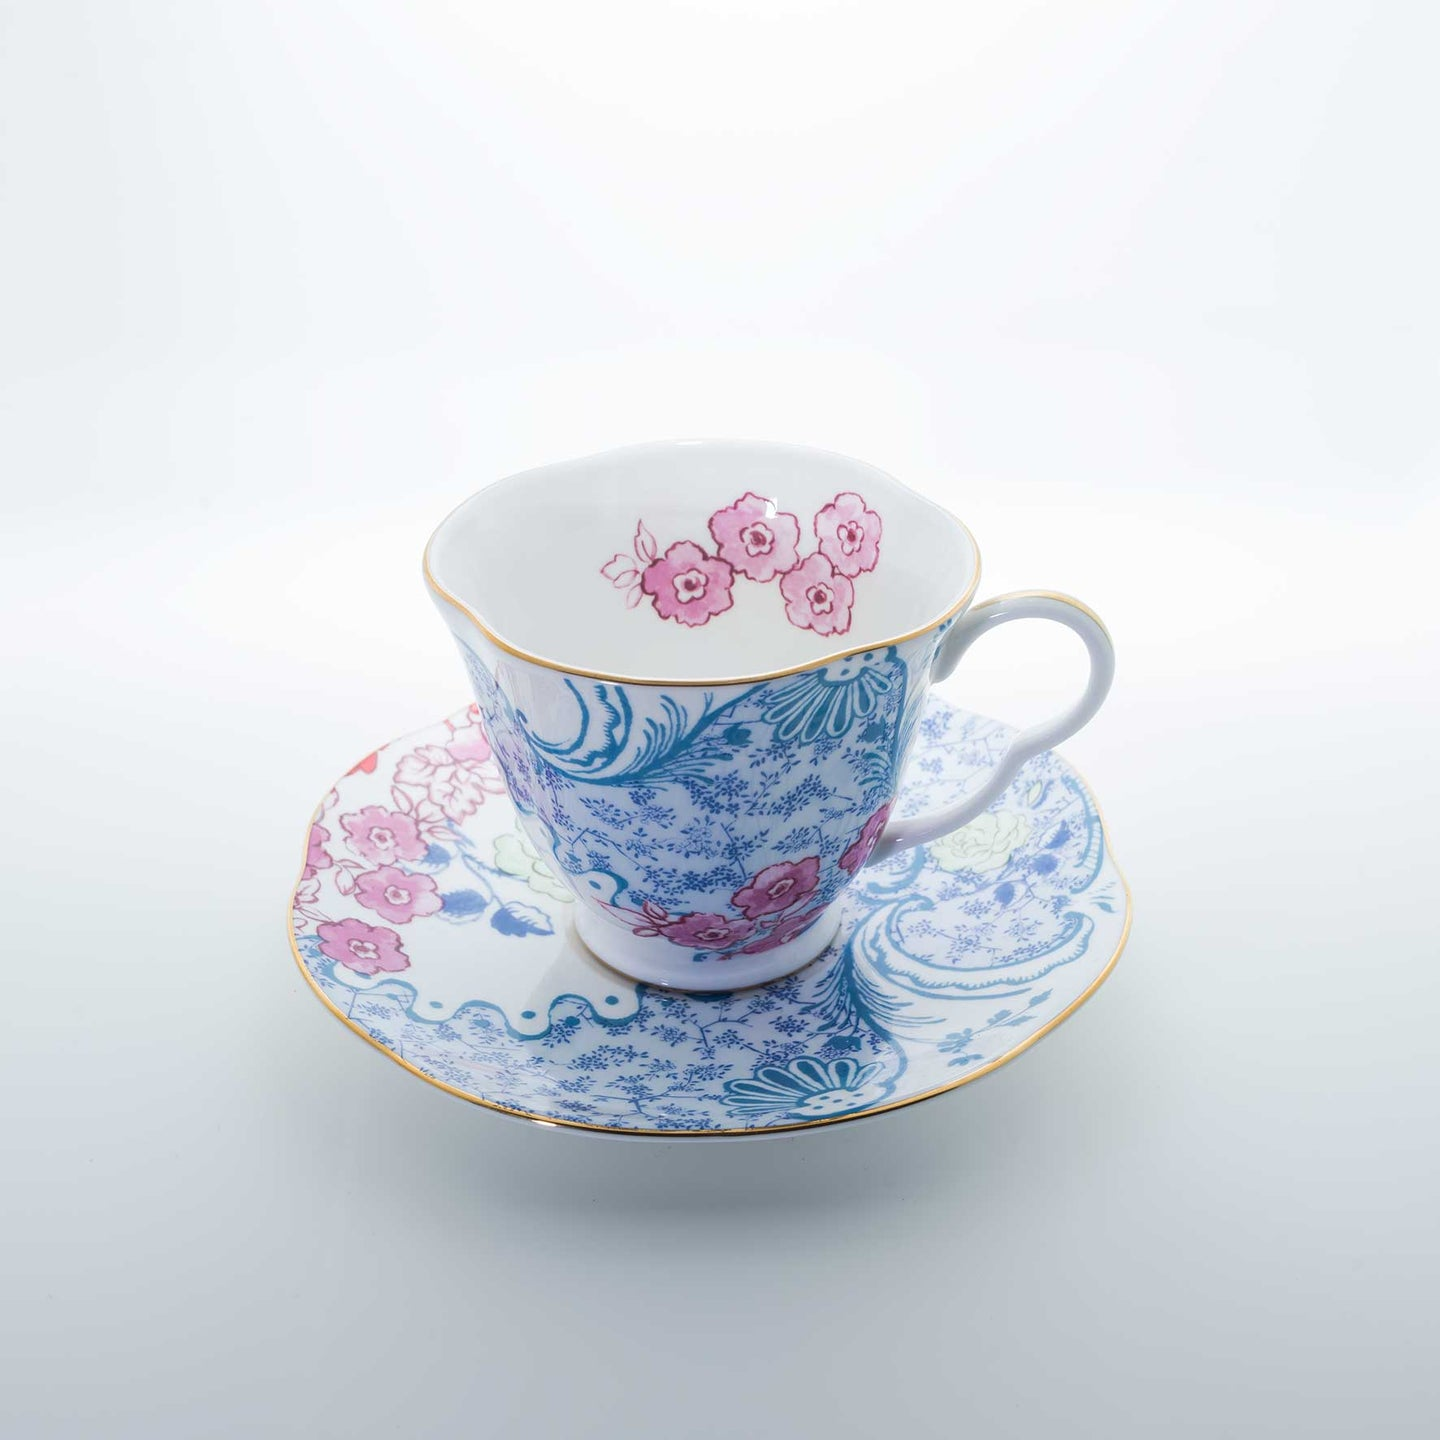 Refresh Moment Wedgwood Butterfly Bloom Spring Blossom Teacup & Saucer